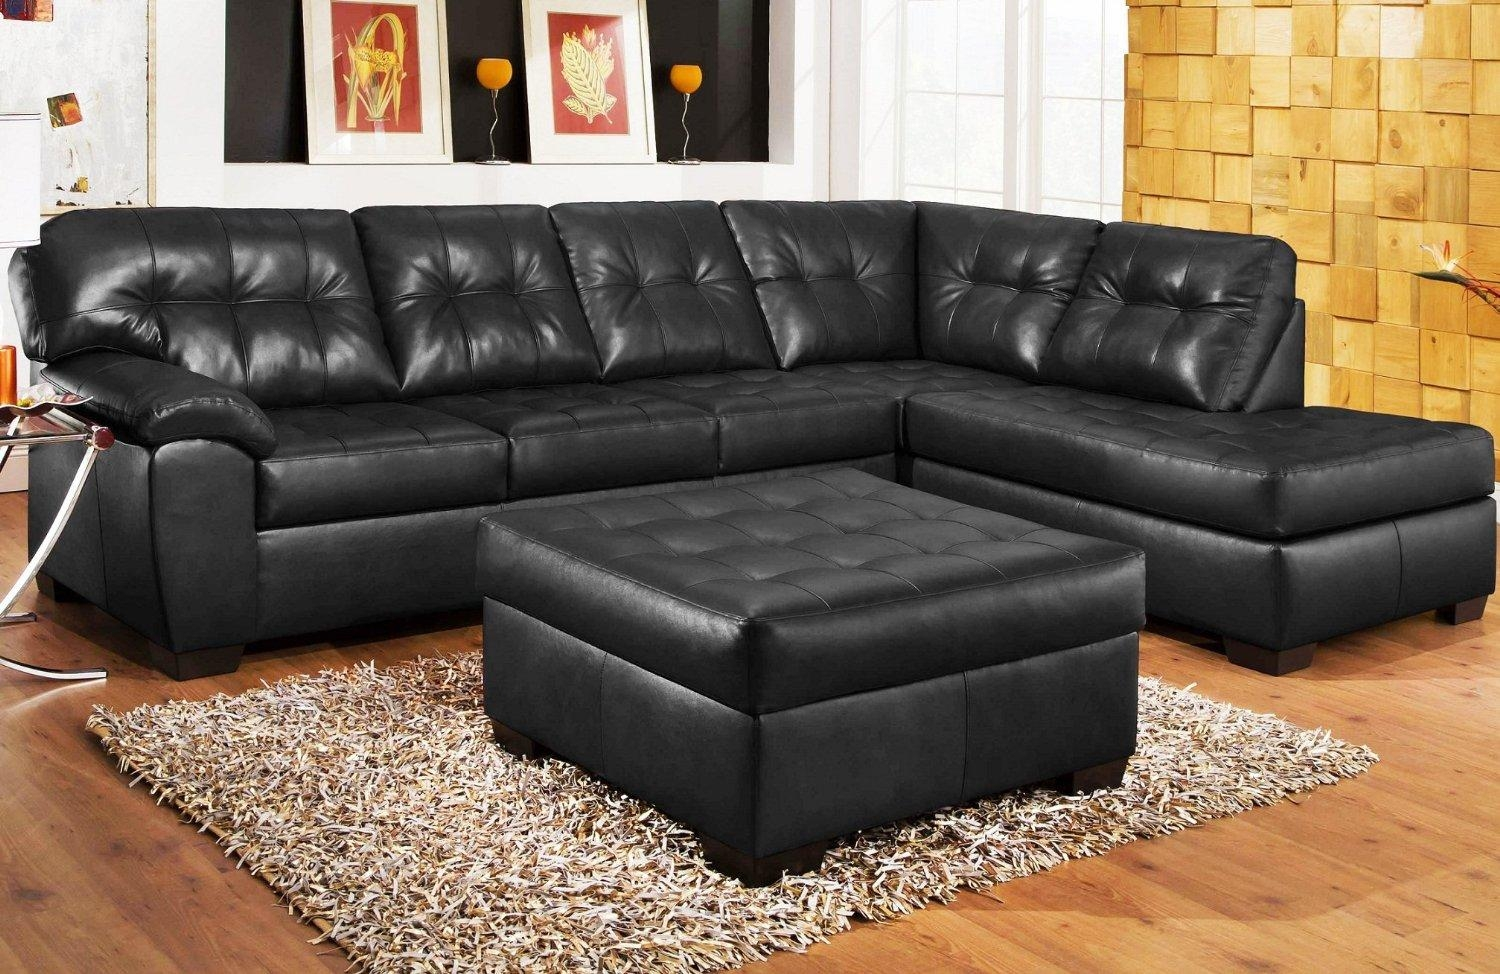 Interior: Stunning Micro Cheap Leather Sectionals For Living Room For Cheap Black Sectionals (View 3 of 15)